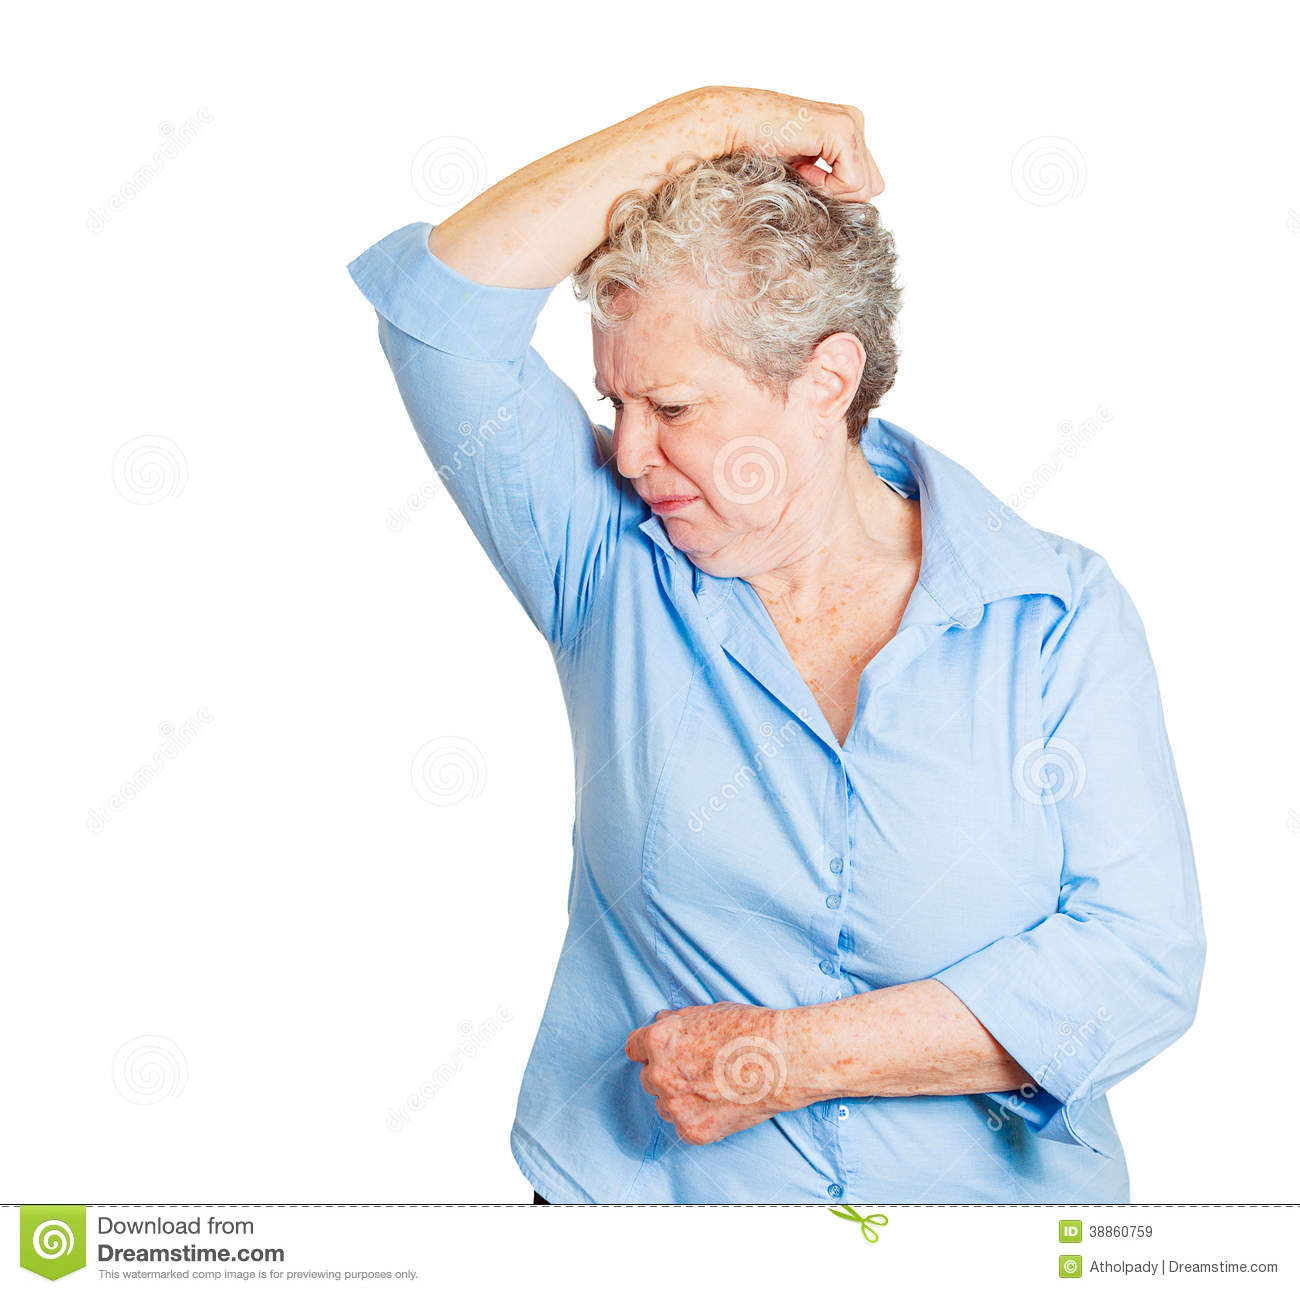 Sniffing stock photos illustrations and vector art for How to get bad smell out of armpits in shirts